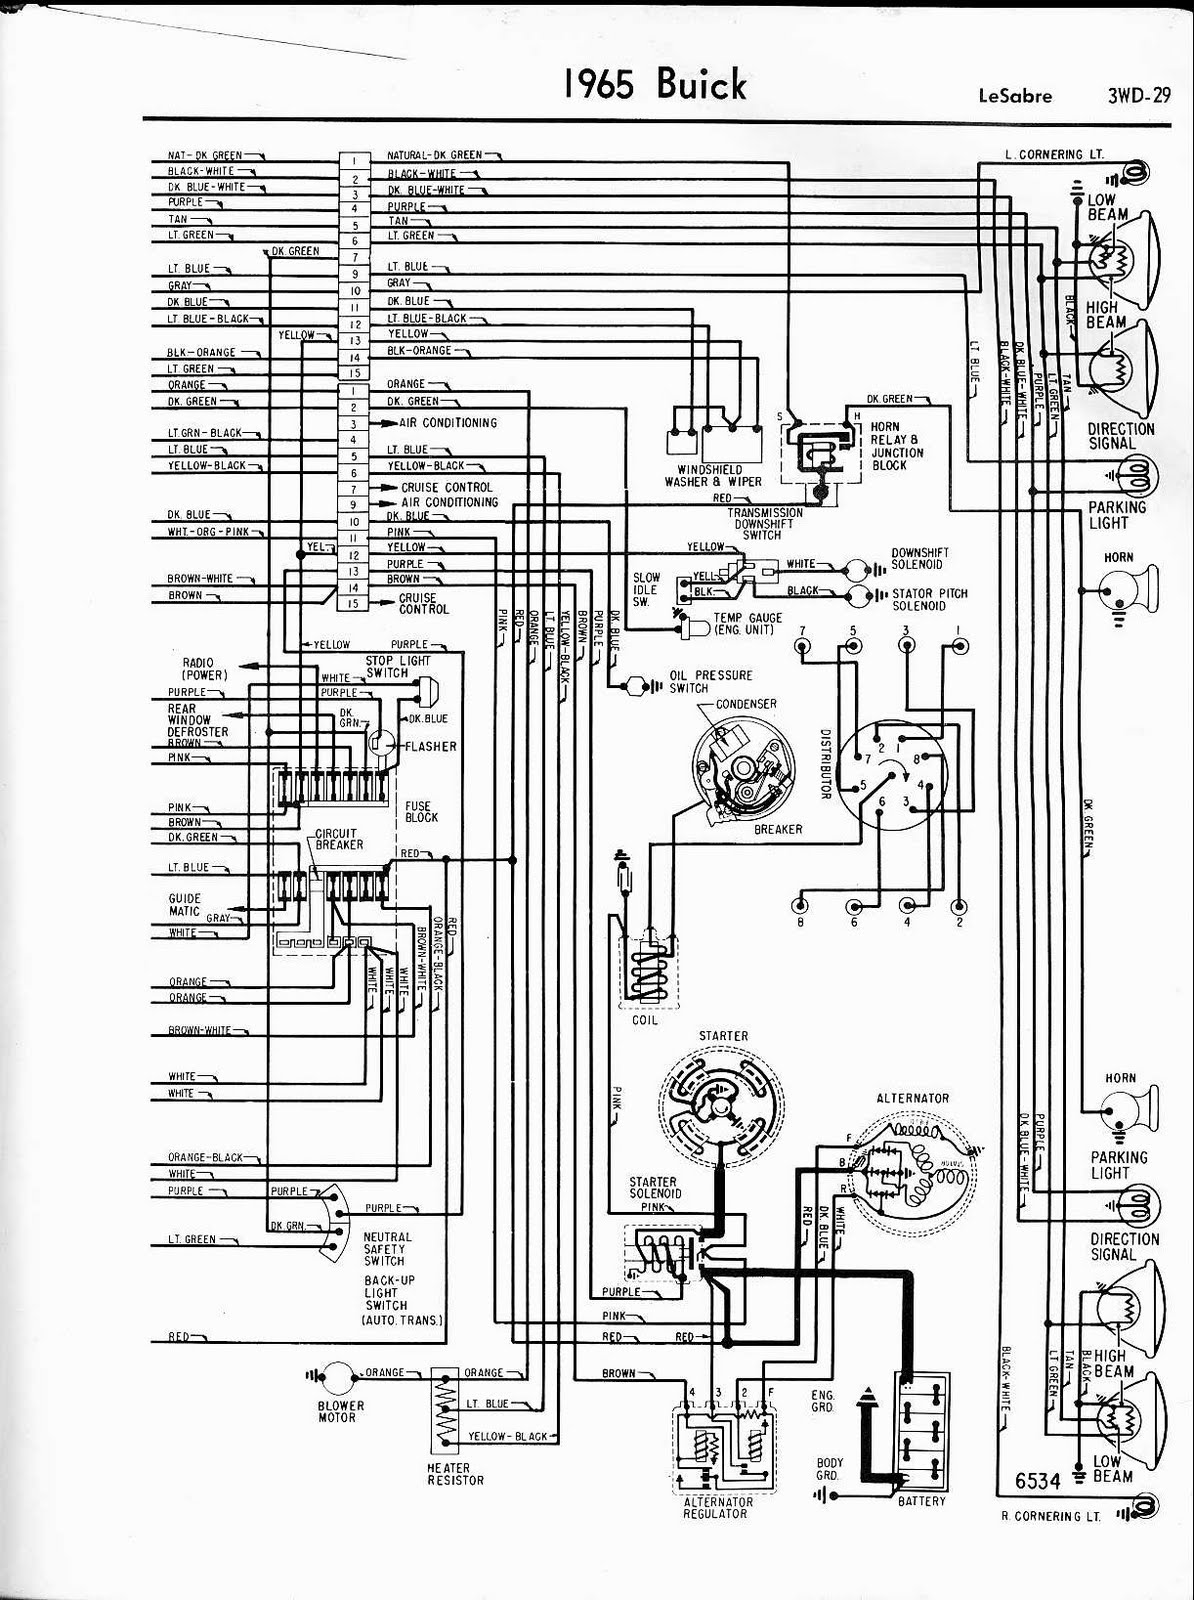 nissan altima wiring diagram further pathfinder throttle body wiring diagram